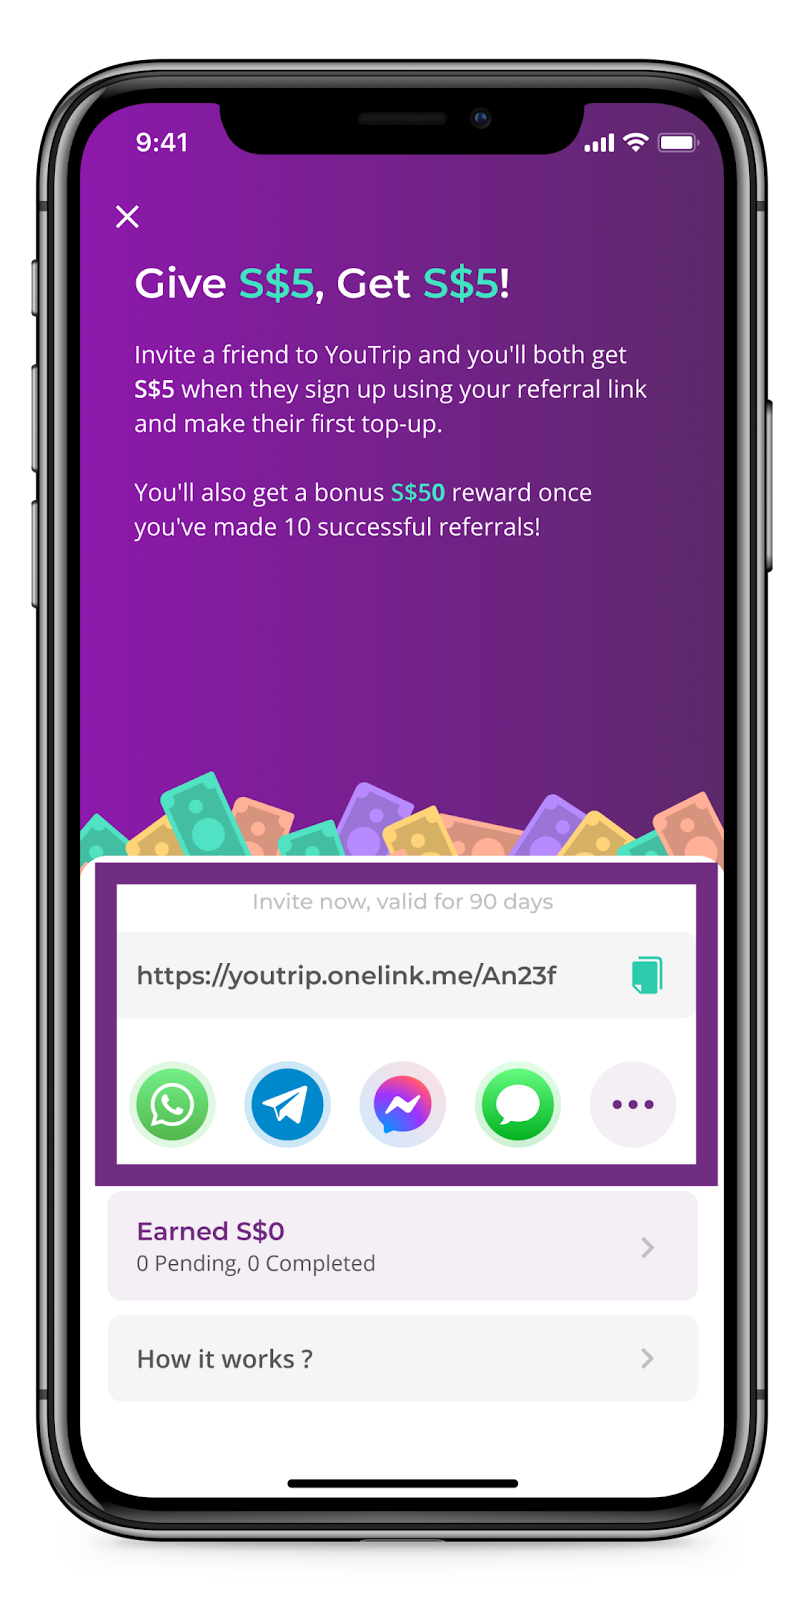 YouTrip Referral Programme: Get $5 Every Time You Refer A Friend!